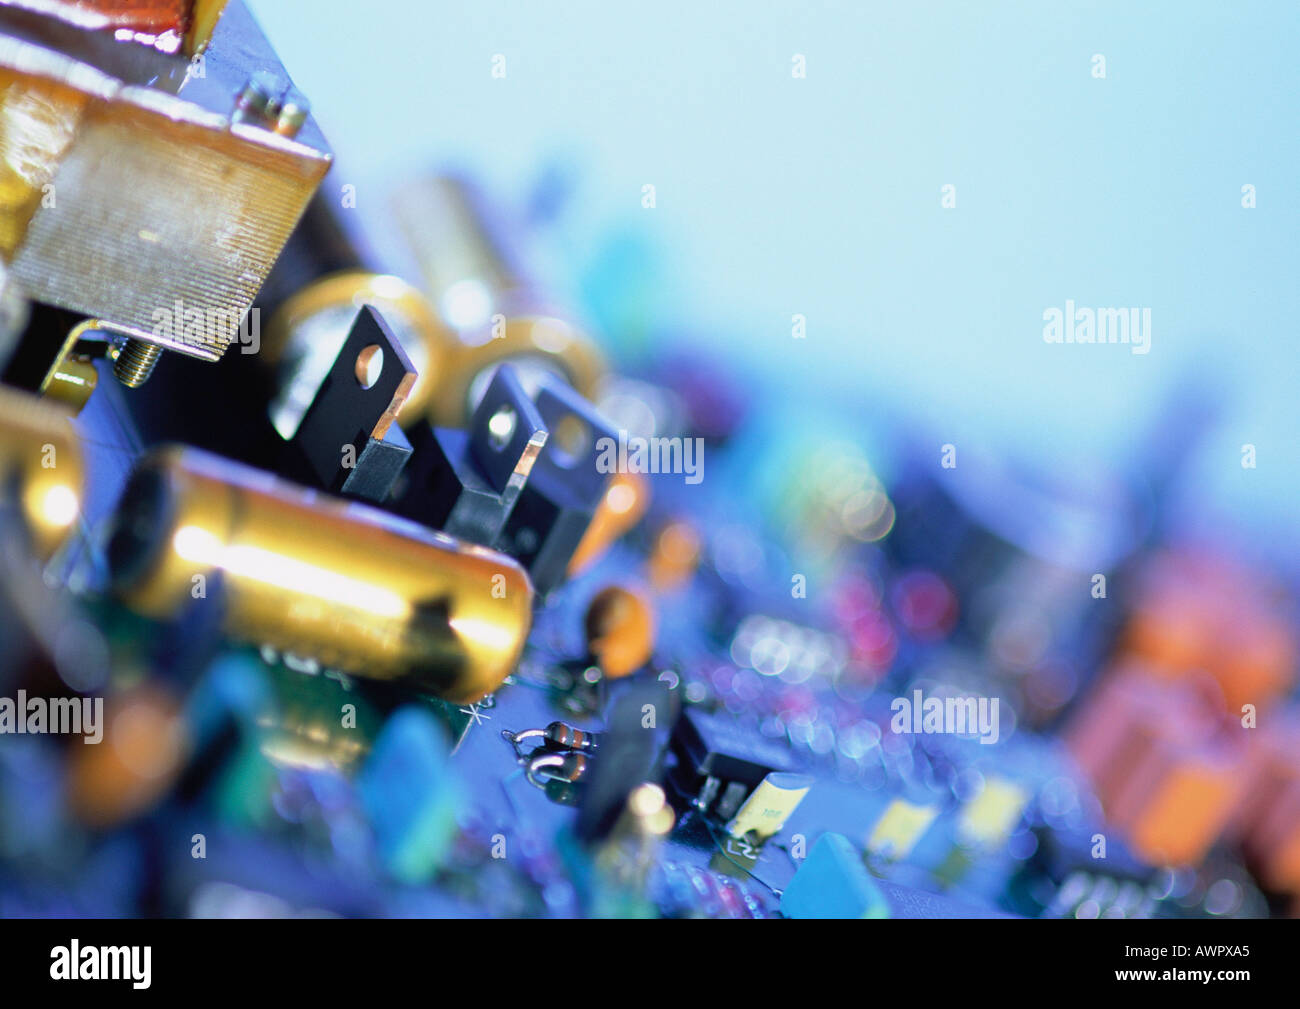 Circuits and transformers, close-up Stock Photo